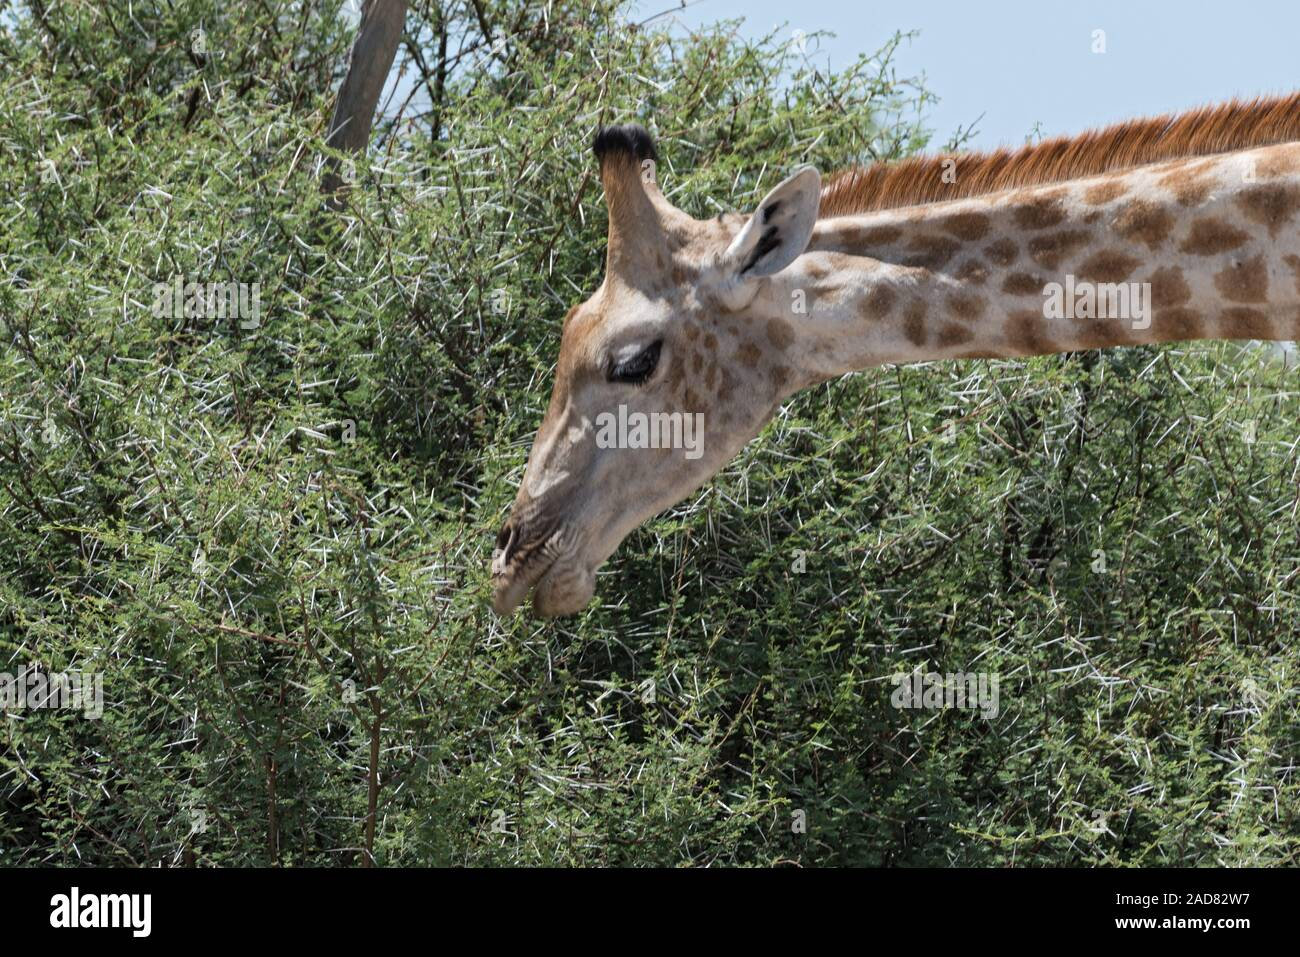 giraffe eating leaves from a large bush, Botswanagiraffe eating leaves from a large bush, Botswana Stock Photo